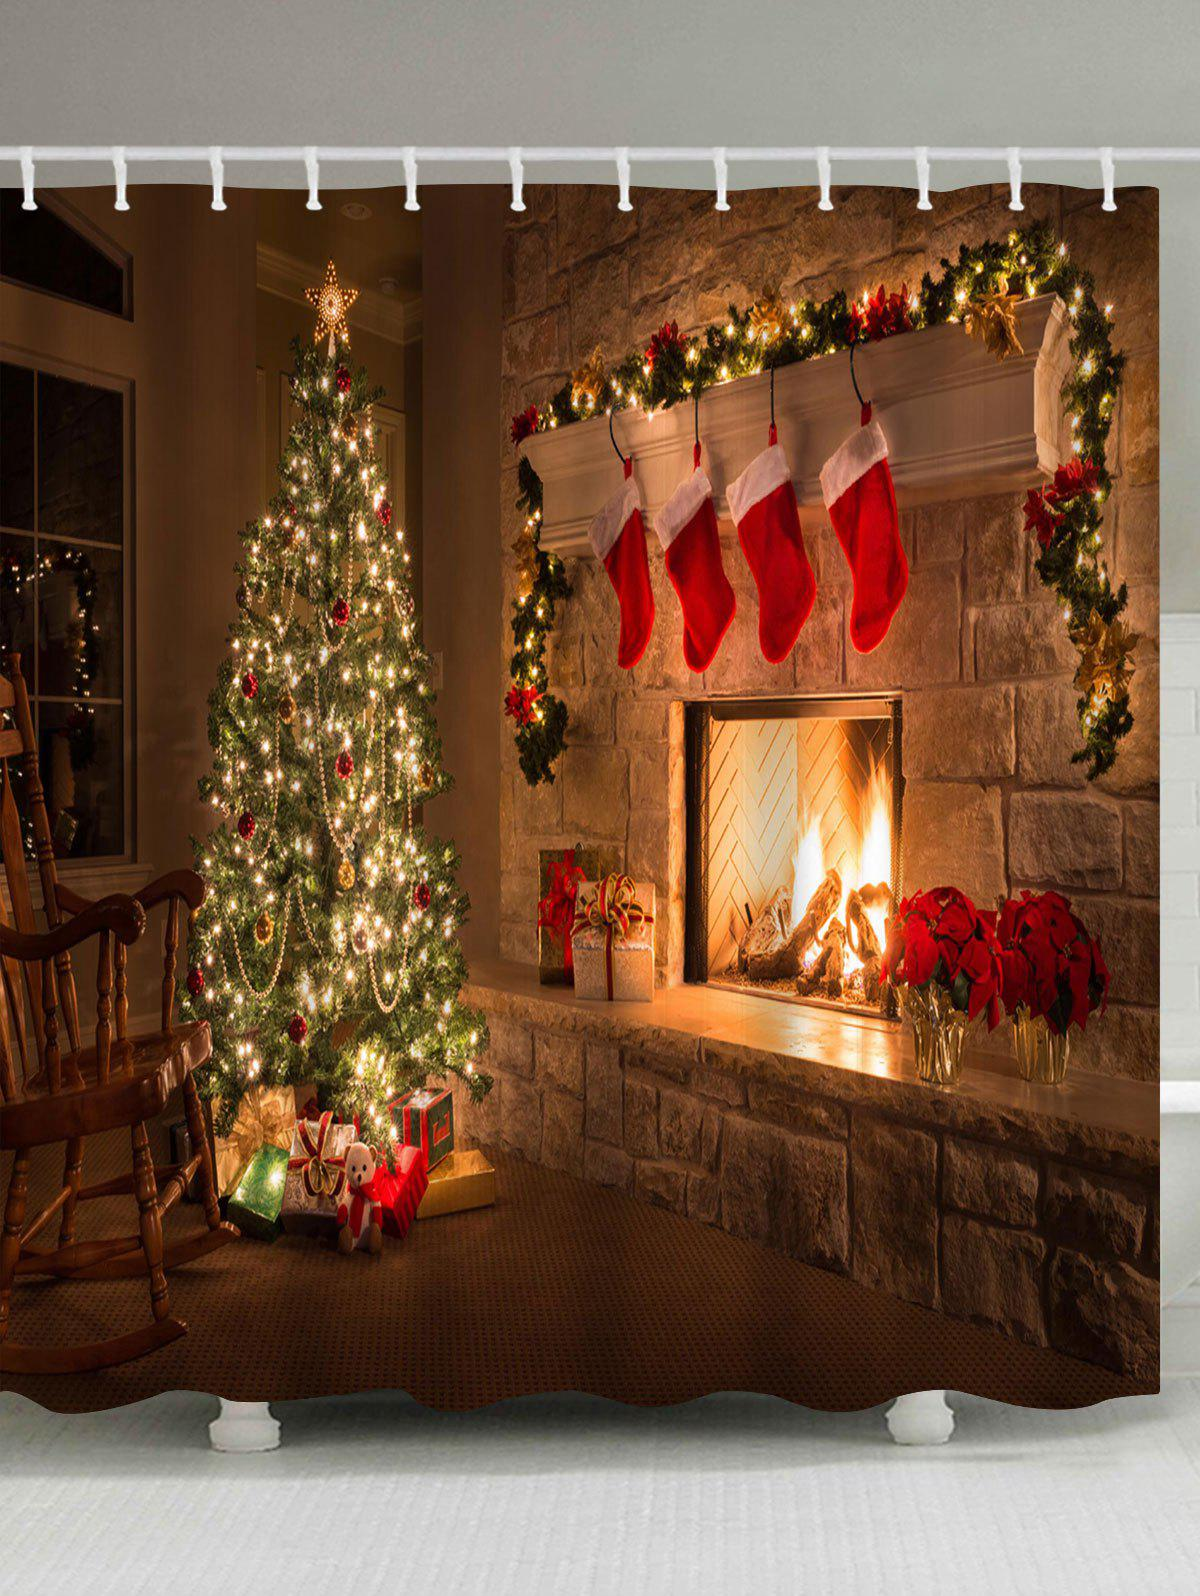 Christmas Fireplace Tree Printed Waterproof Shower CurtainHOME<br><br>Size: W71 INCH * L79 INCH; Color: BROWN; Products Type: Shower Curtains; Materials: Polyester; Pattern: Christmas Tree; Style: Festival; Number of Hook Holes: W59 inch*L71 inch: 10; W71 inch*L71 inch: 12; W71 inch*L79 inch: 12; Package Contents: 1 x Shower Curtain 1 x Hooks (Set);